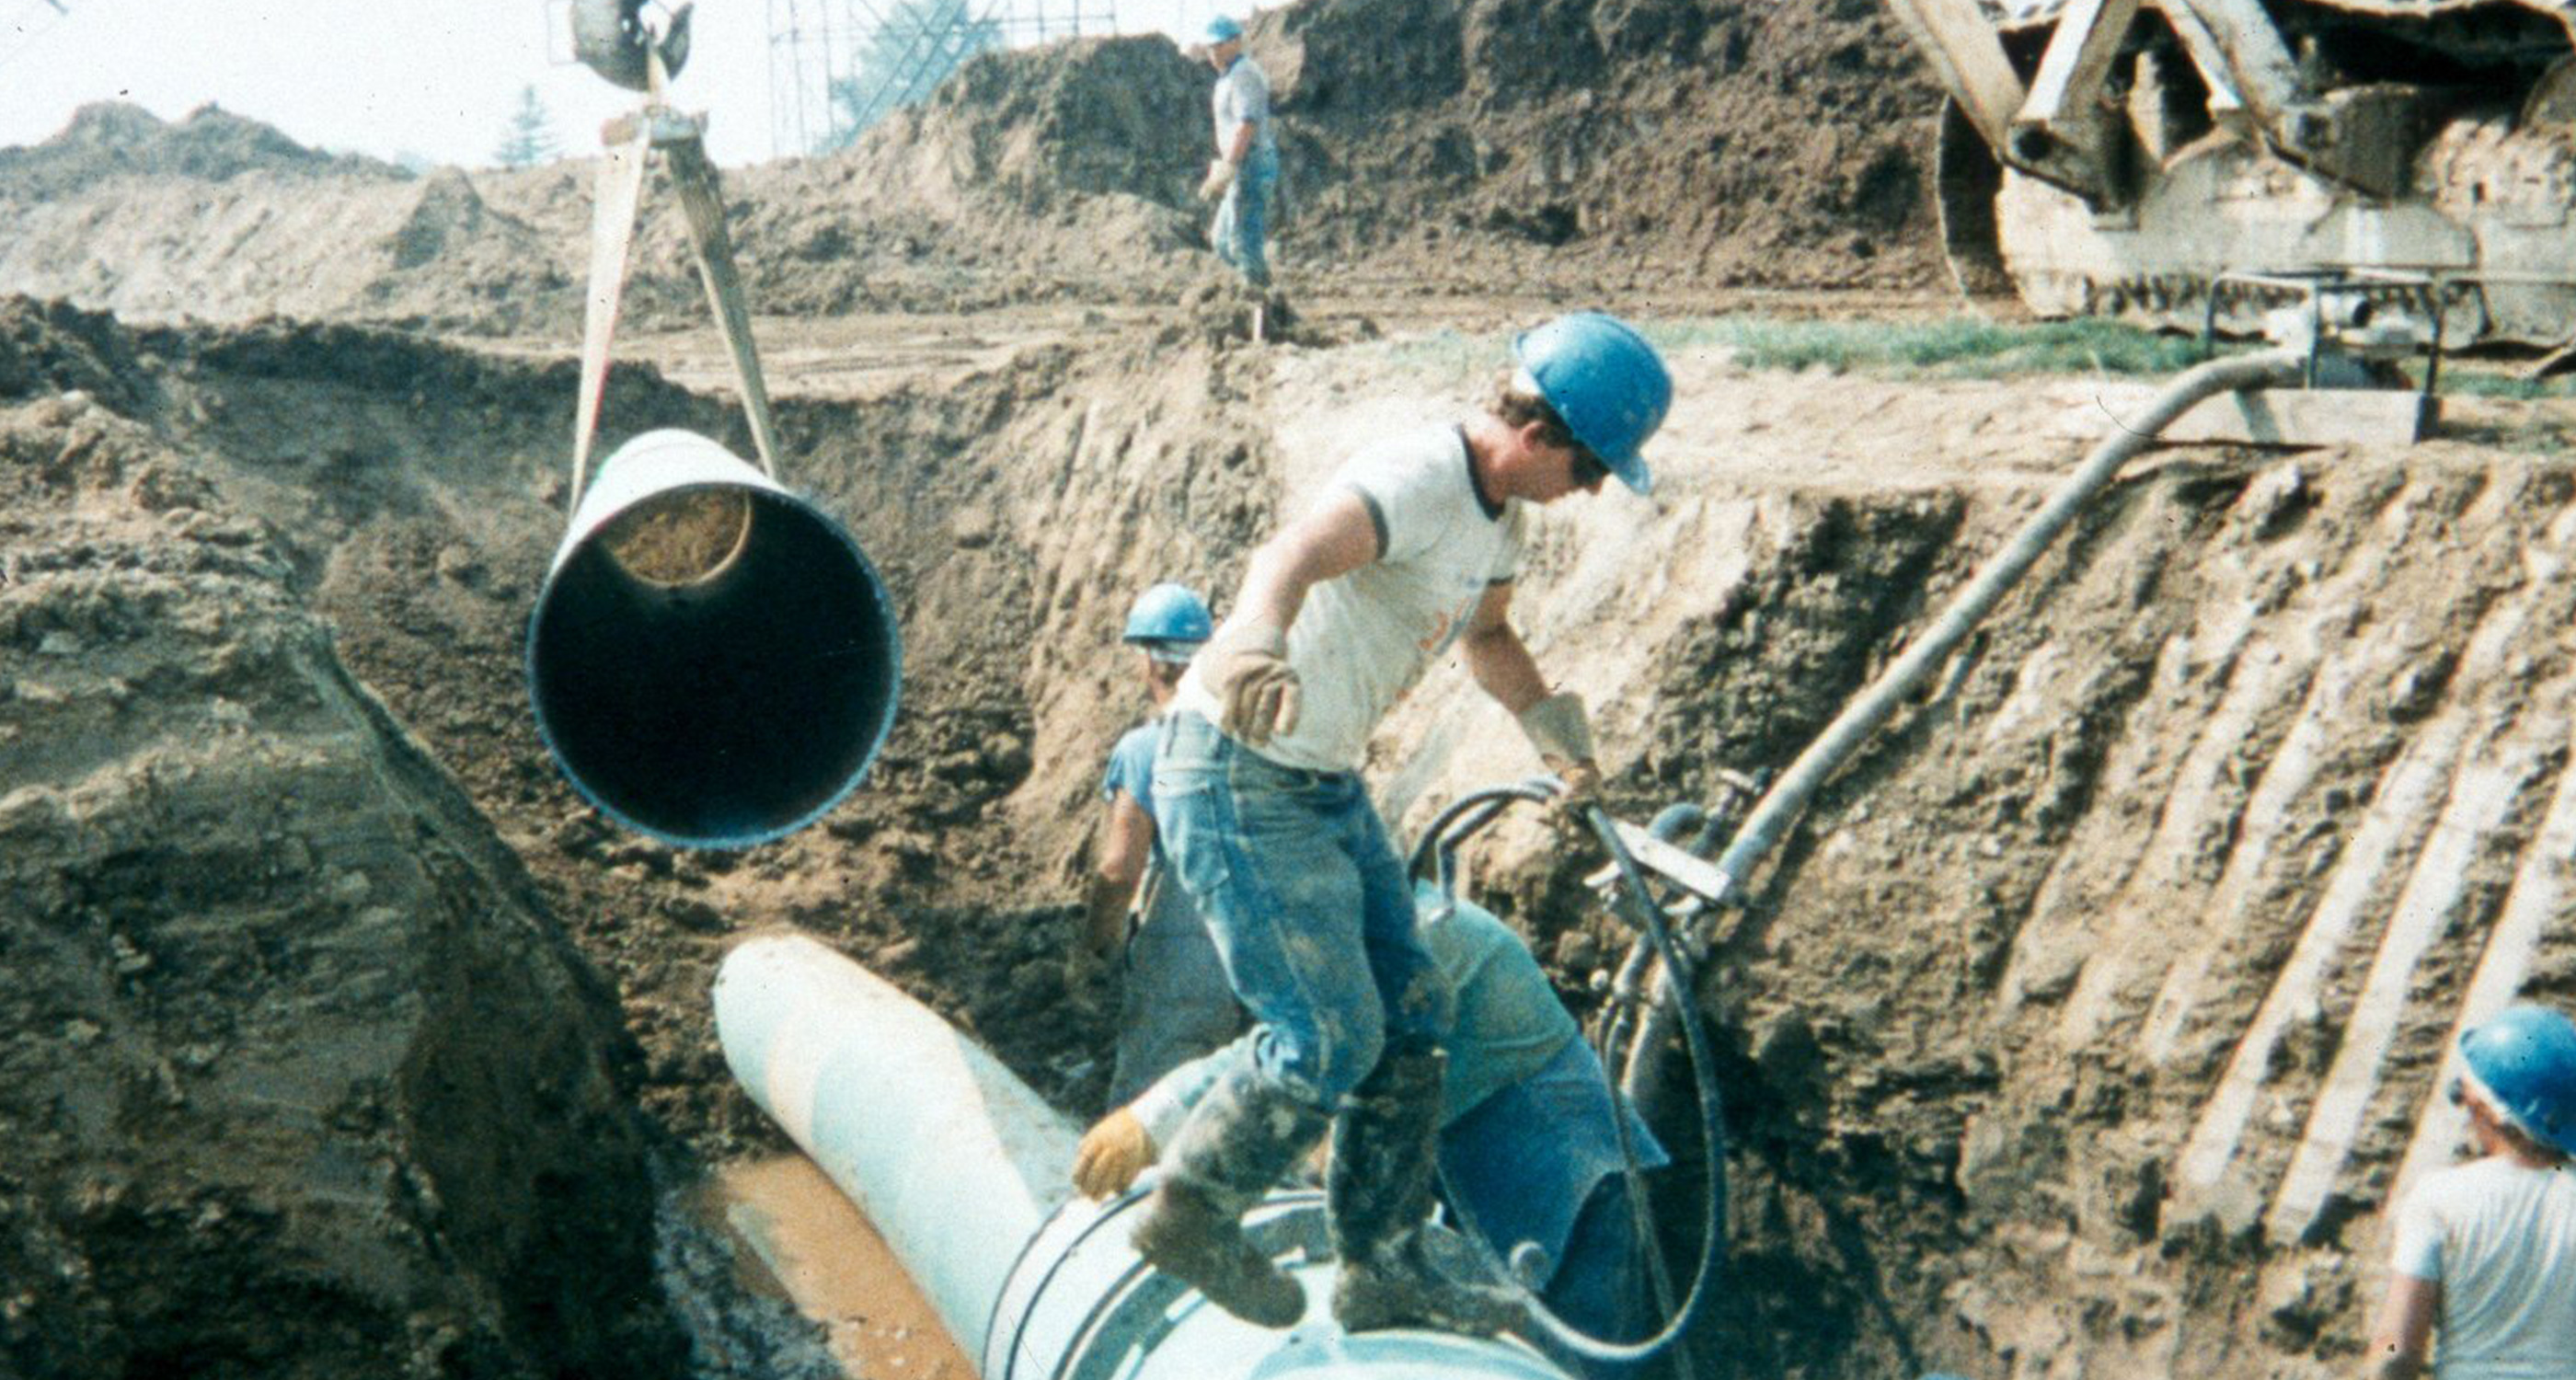 installing pipes